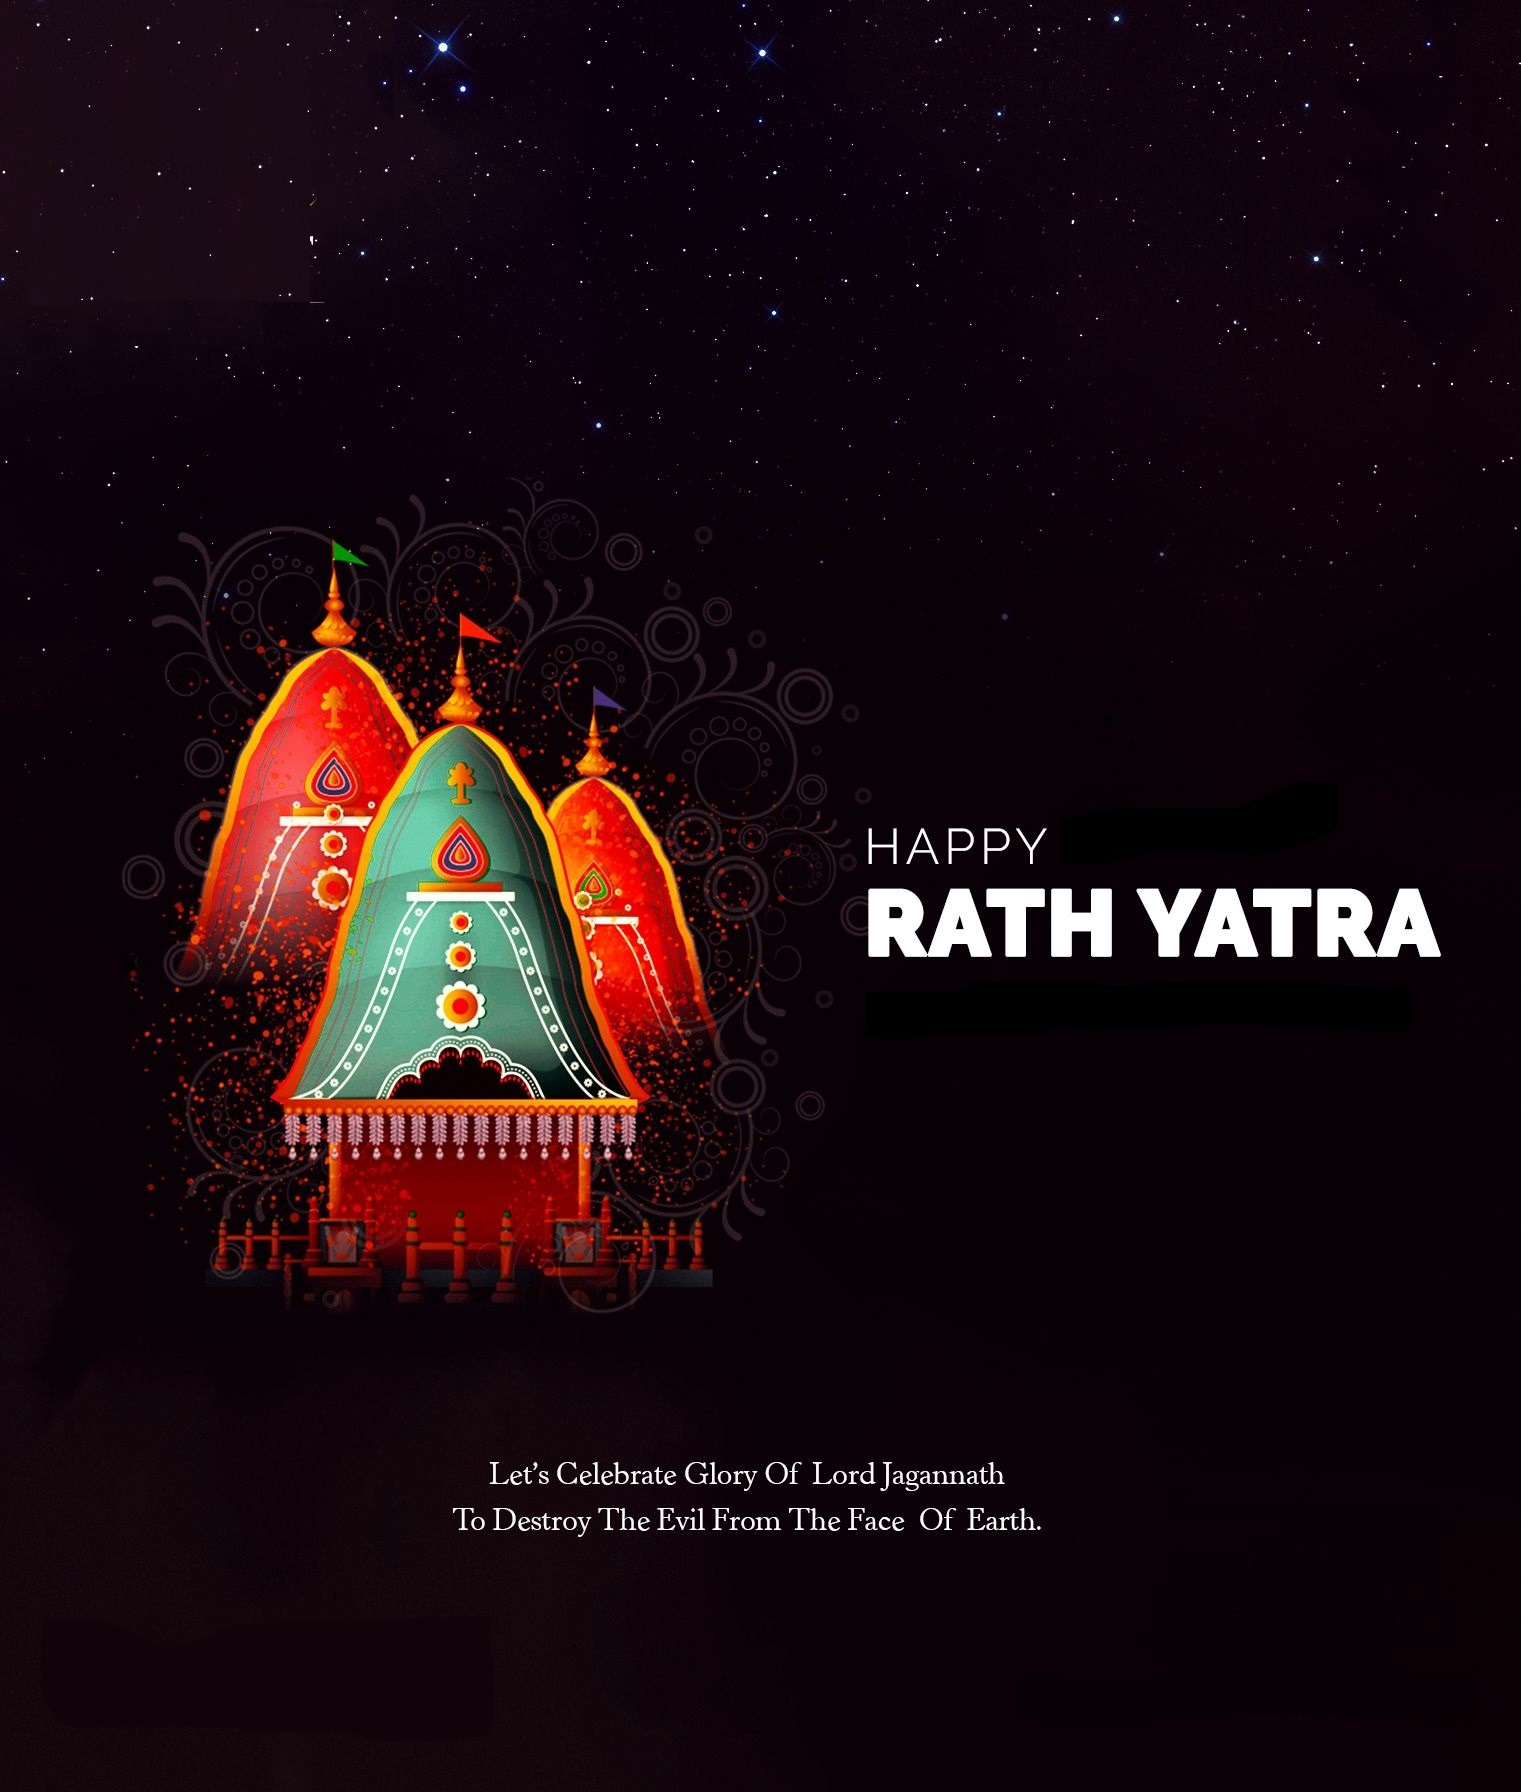 Rath Yatra wallpaper download